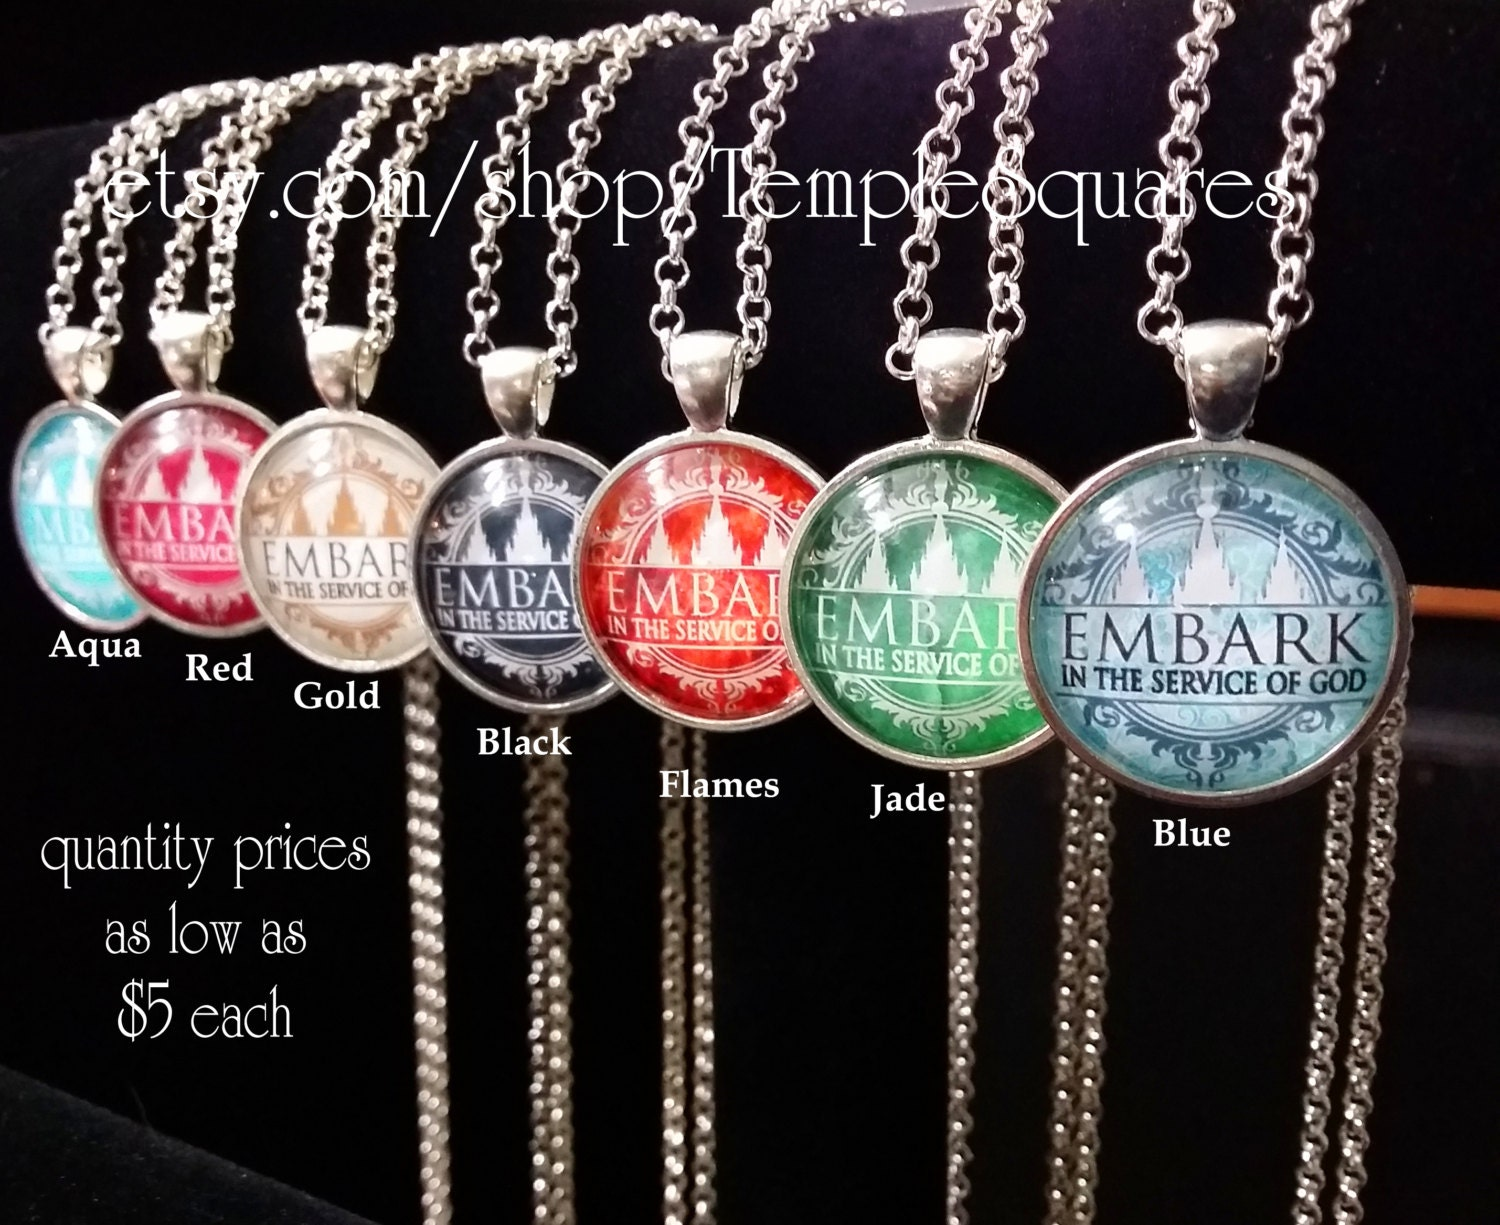 Best Christmas Gifts For Young Women Part - 50: Embark In The Service Of God - Pendant Necklace YW Young Women, Relief  Society, Or Missionary Gifts.